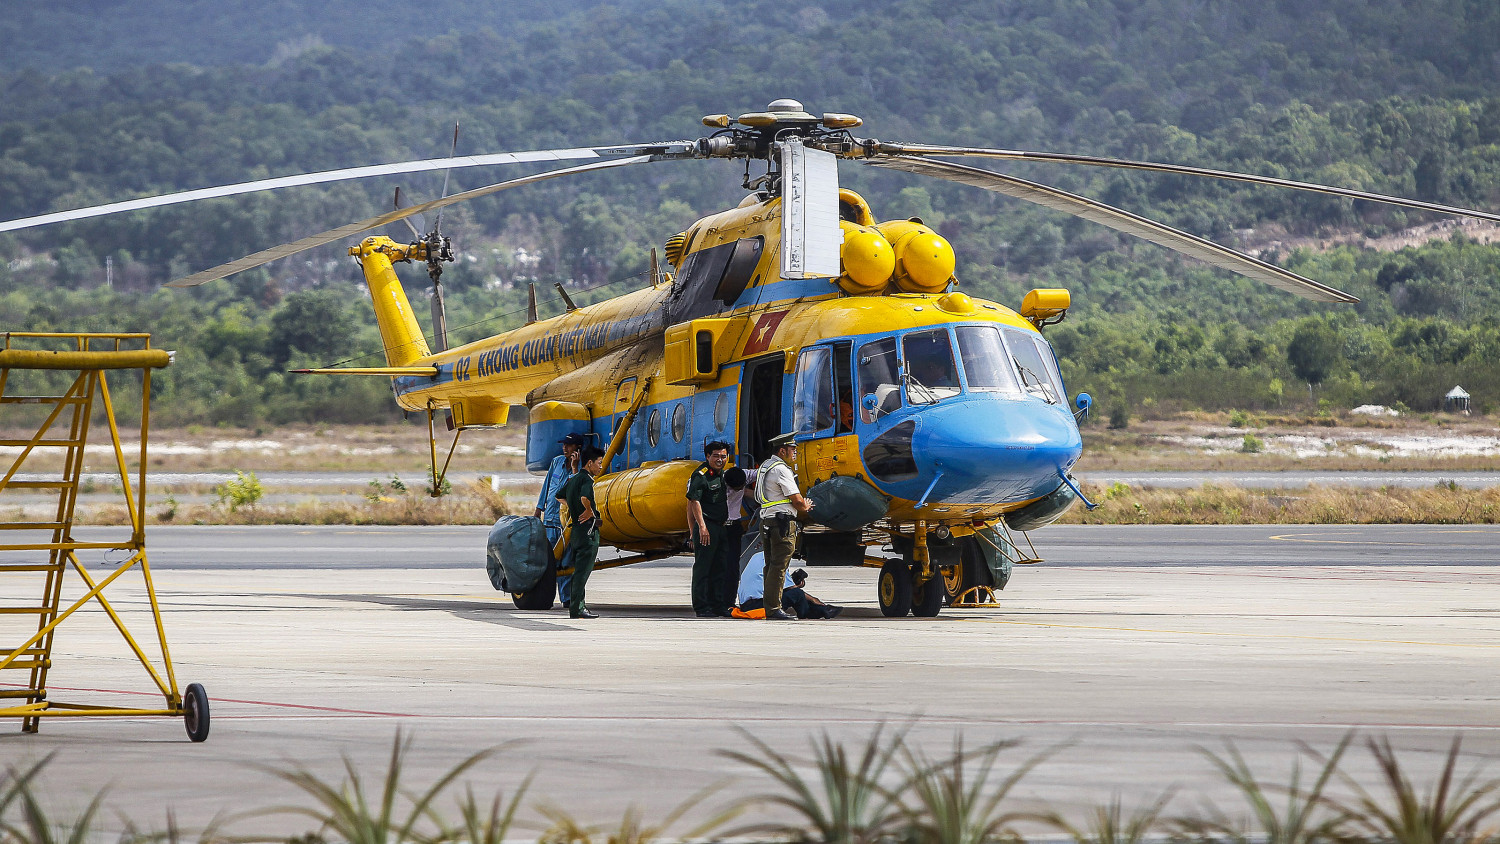 Vietnamese military personnel prepare a helicopter for a search and rescue mission for the missing Malaysia Airlines (MAS) flight MH370 off Vietnam's southern coastline. (Le Quang Nhat/AFP/Getty Images)